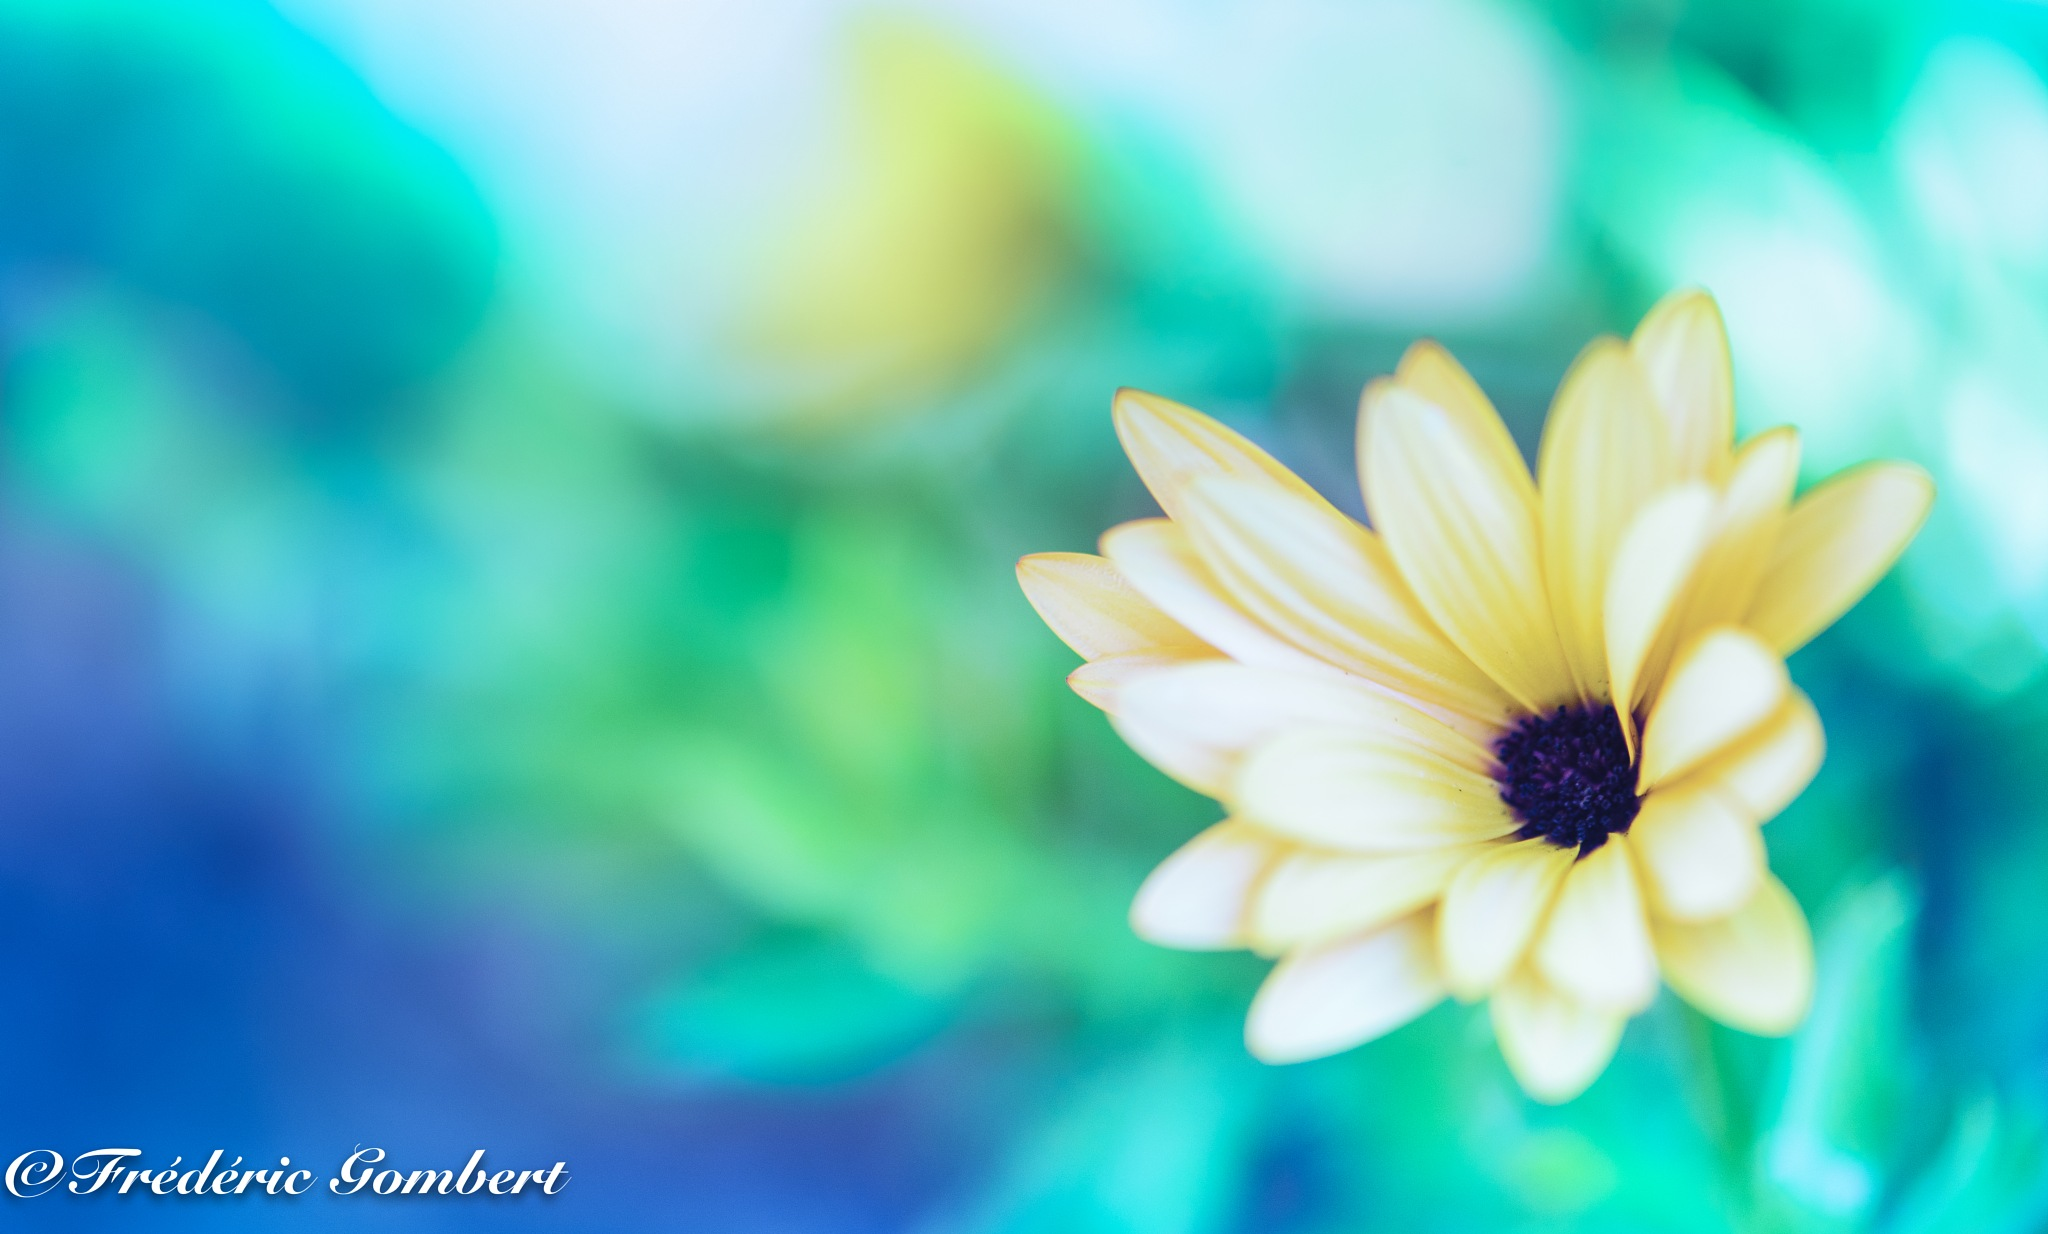 Light by Frederic Gombert